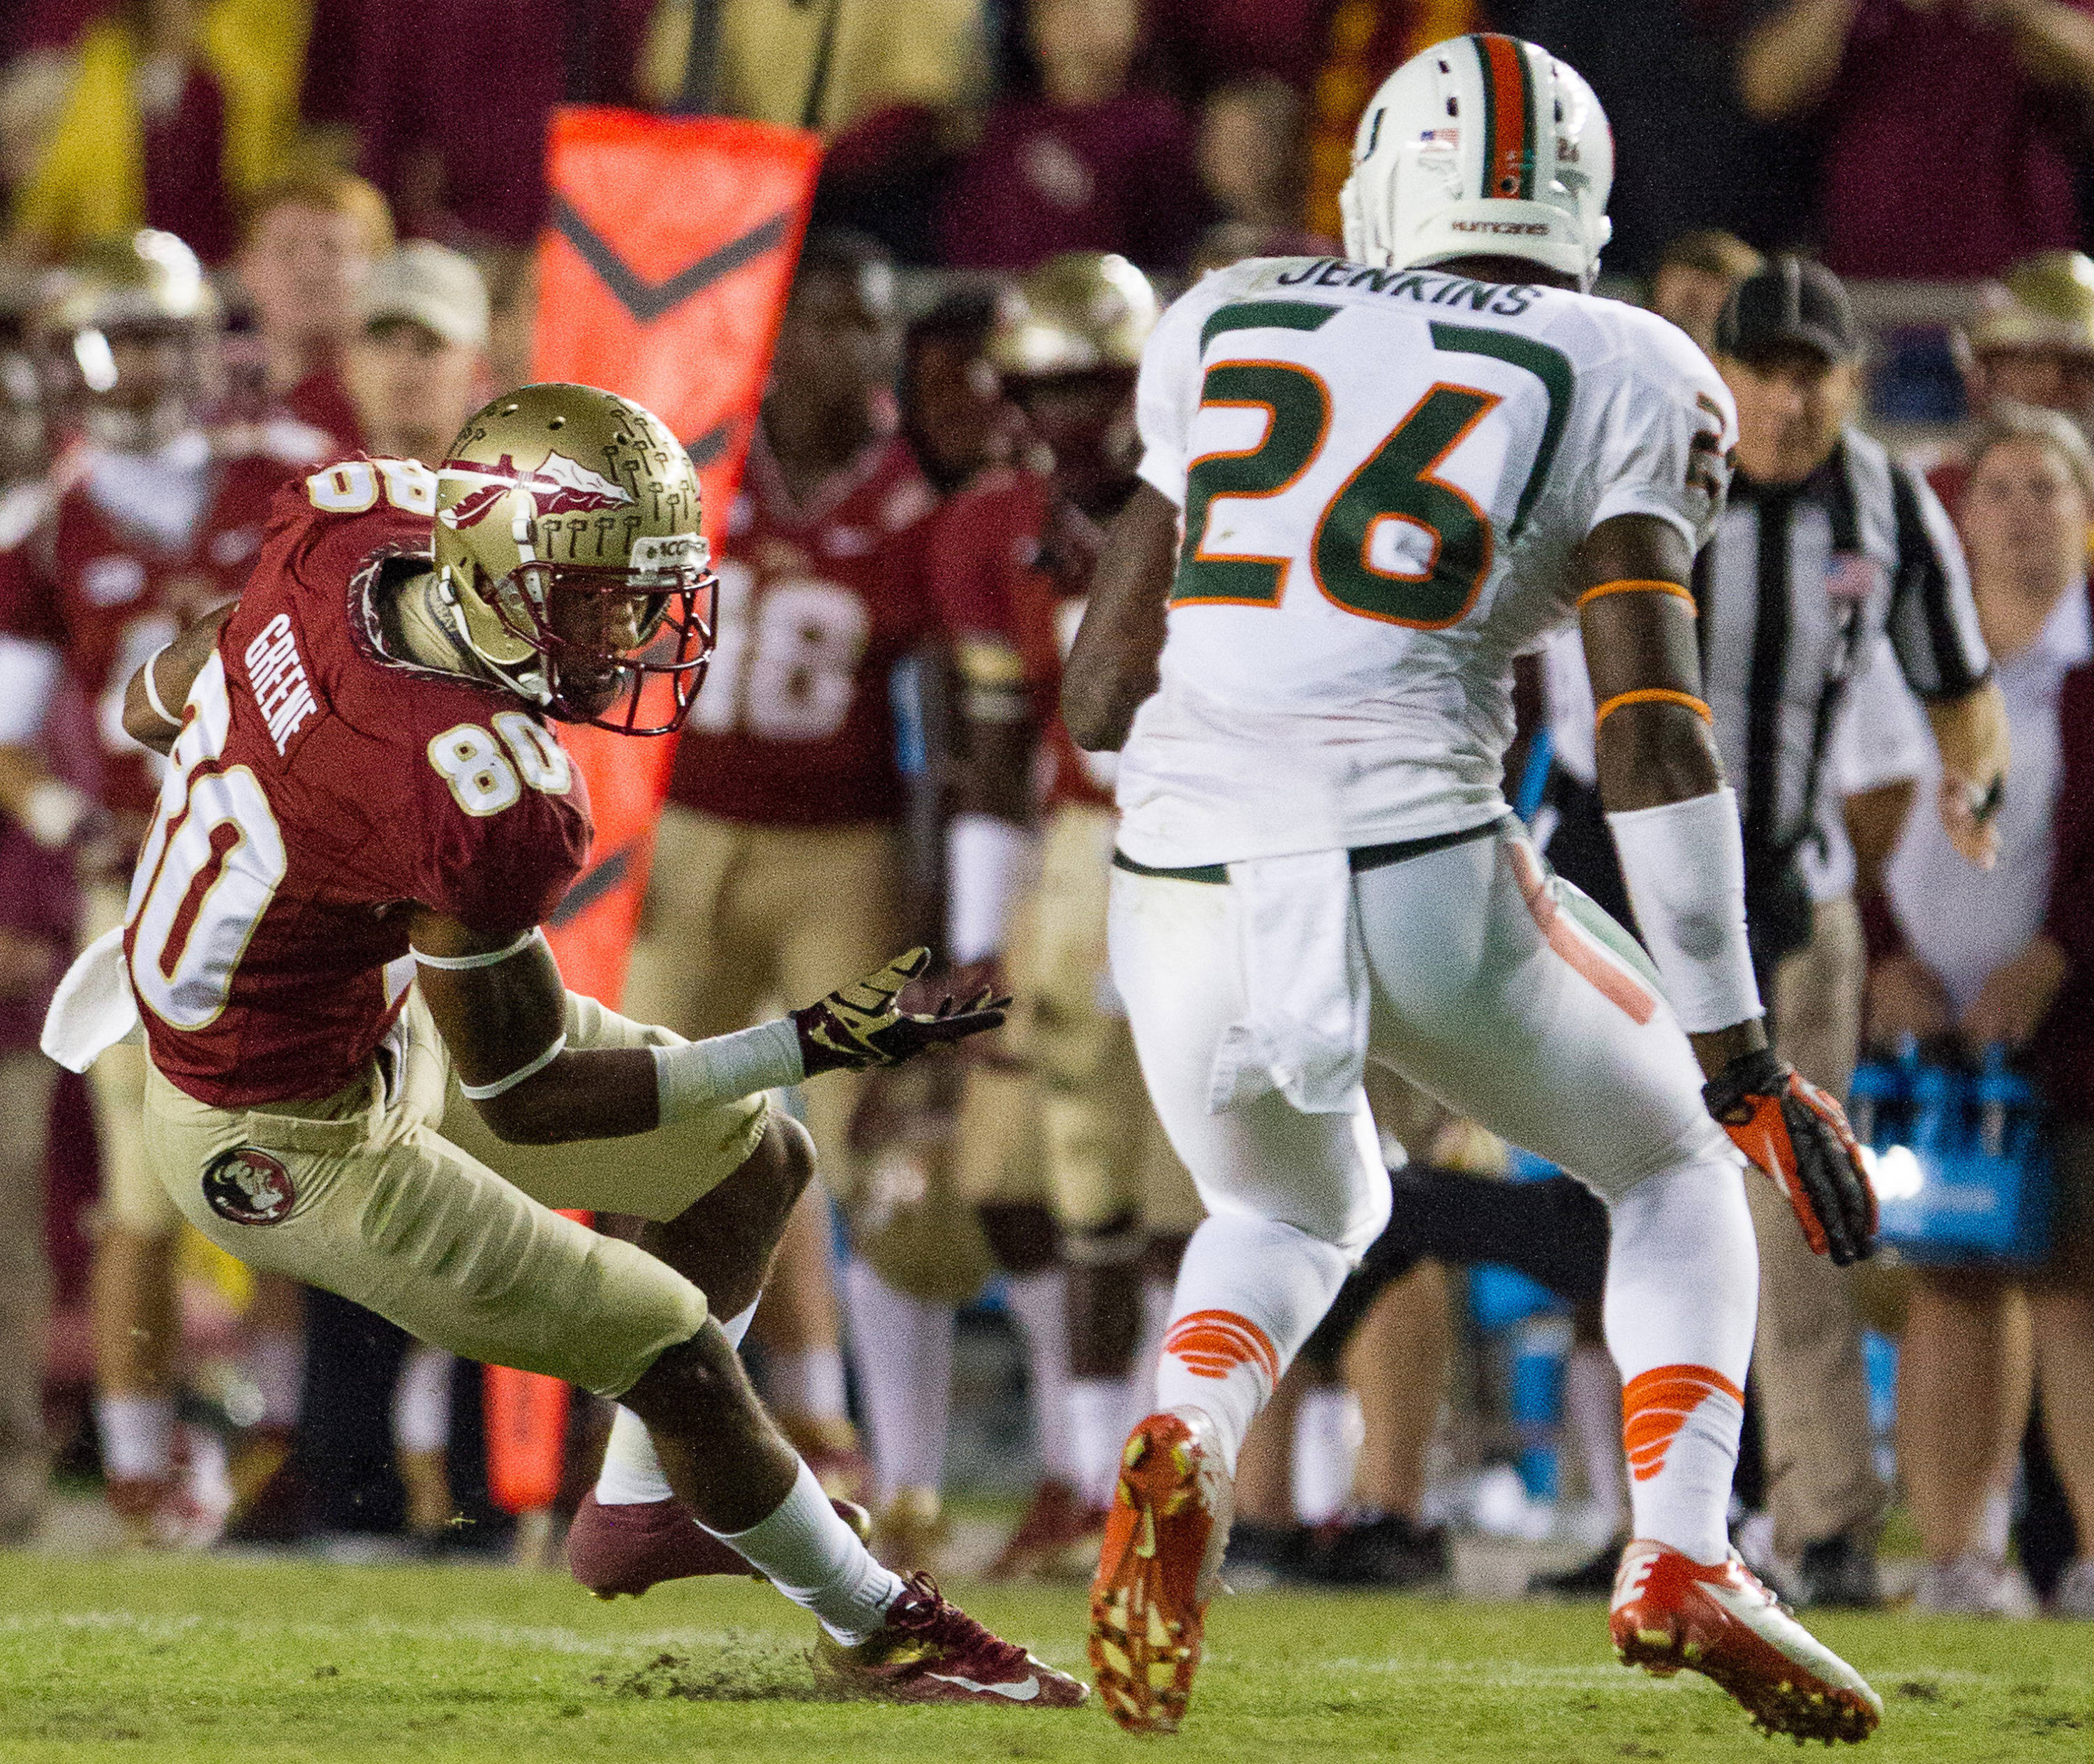 Rashad Greene (80) runs the ball during FSU football's 41-14 win over Miami on Saturday, November 2, 2013 in Tallahassee, Fla. Photo by Michael Schwarz.